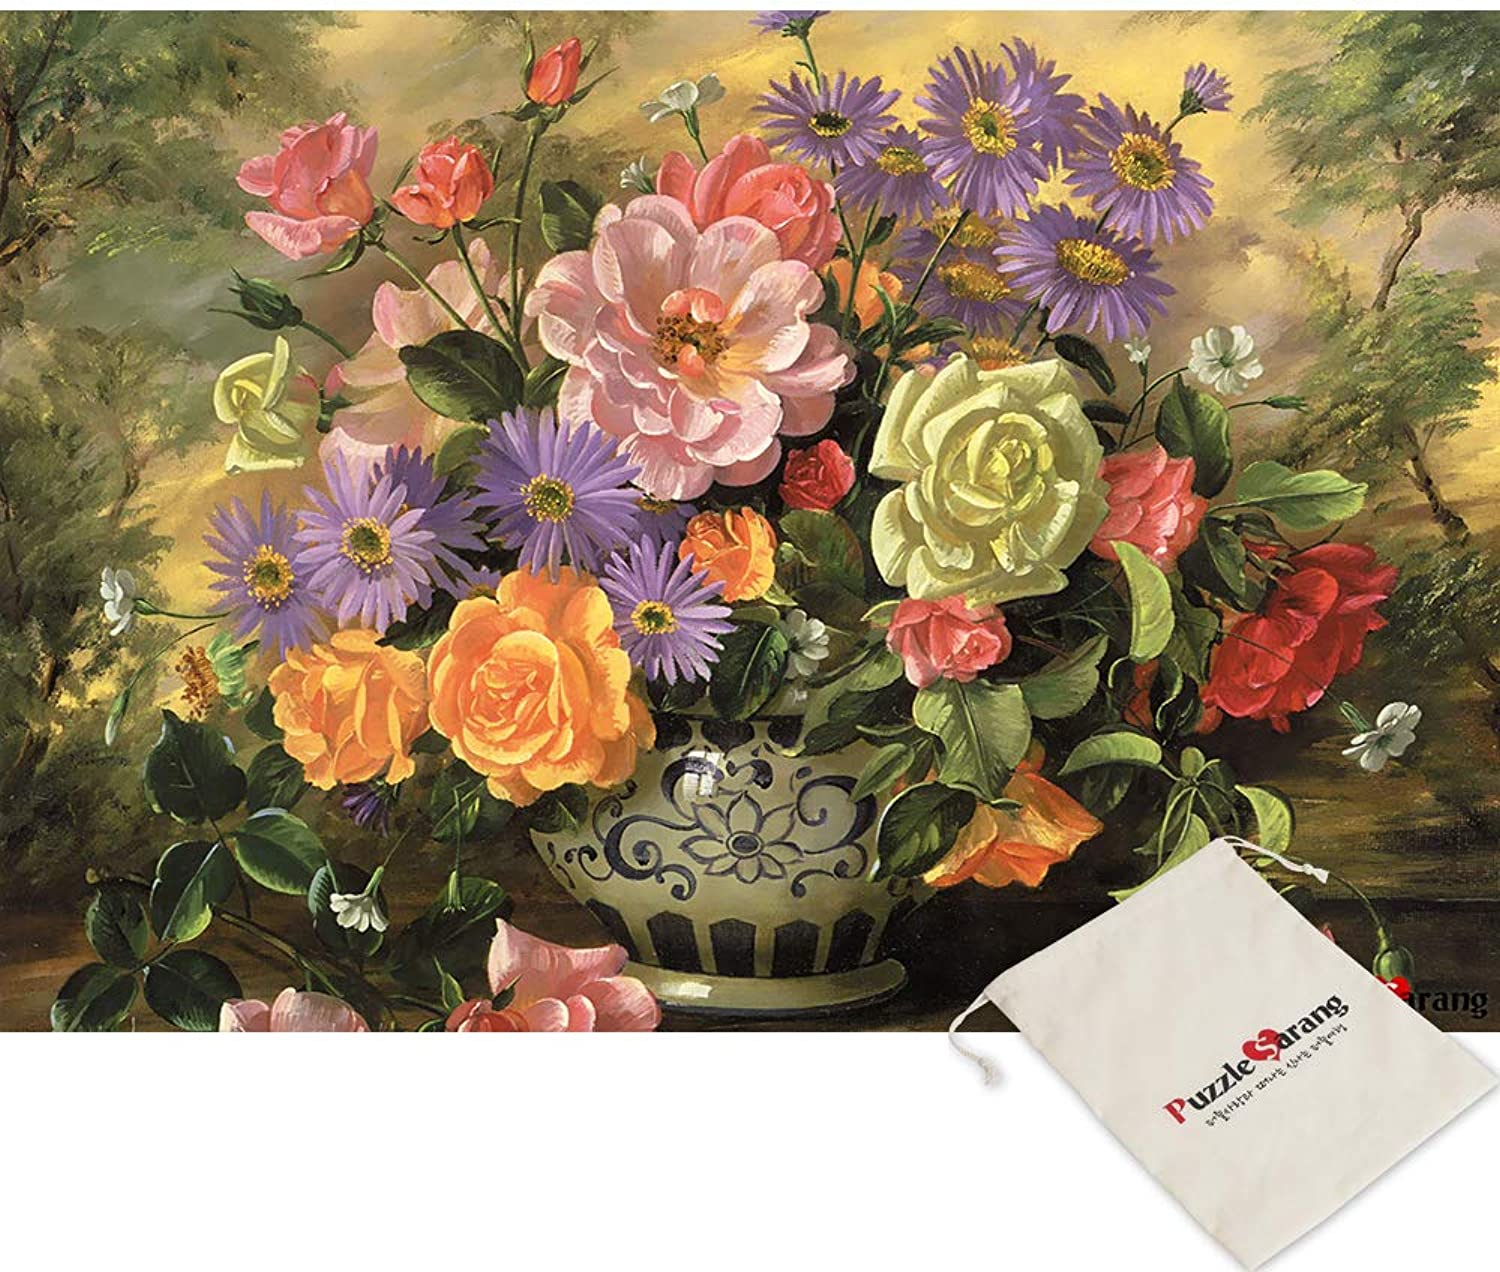 Chamberart Vases pinks - 1000 Piece Jigsaw Puzzle [Pouch Included]